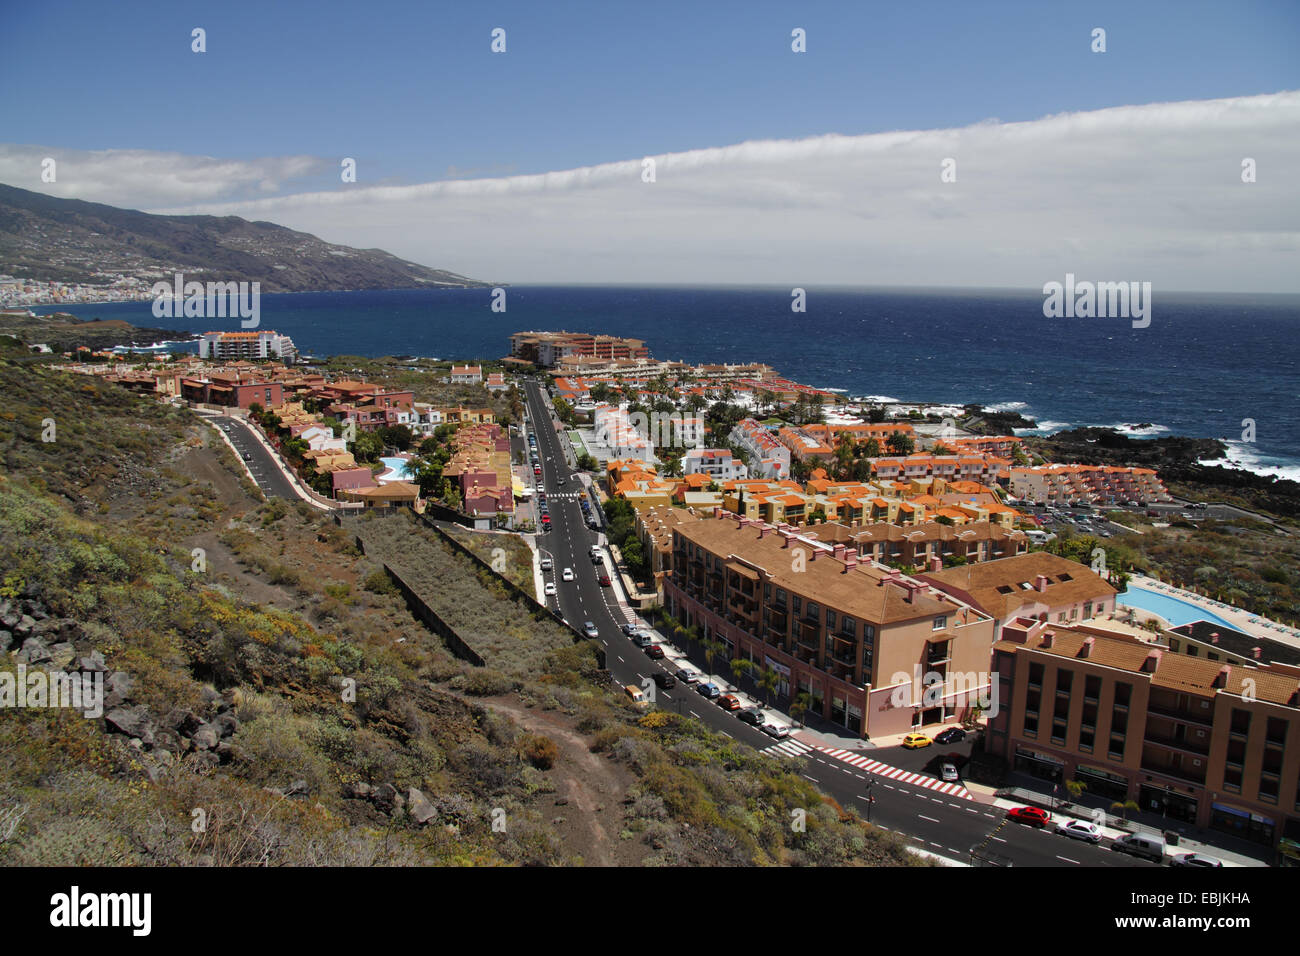 view onto the tourist location and the sea, Canary Islands, La Palma, Los Cancajos - Stock Image